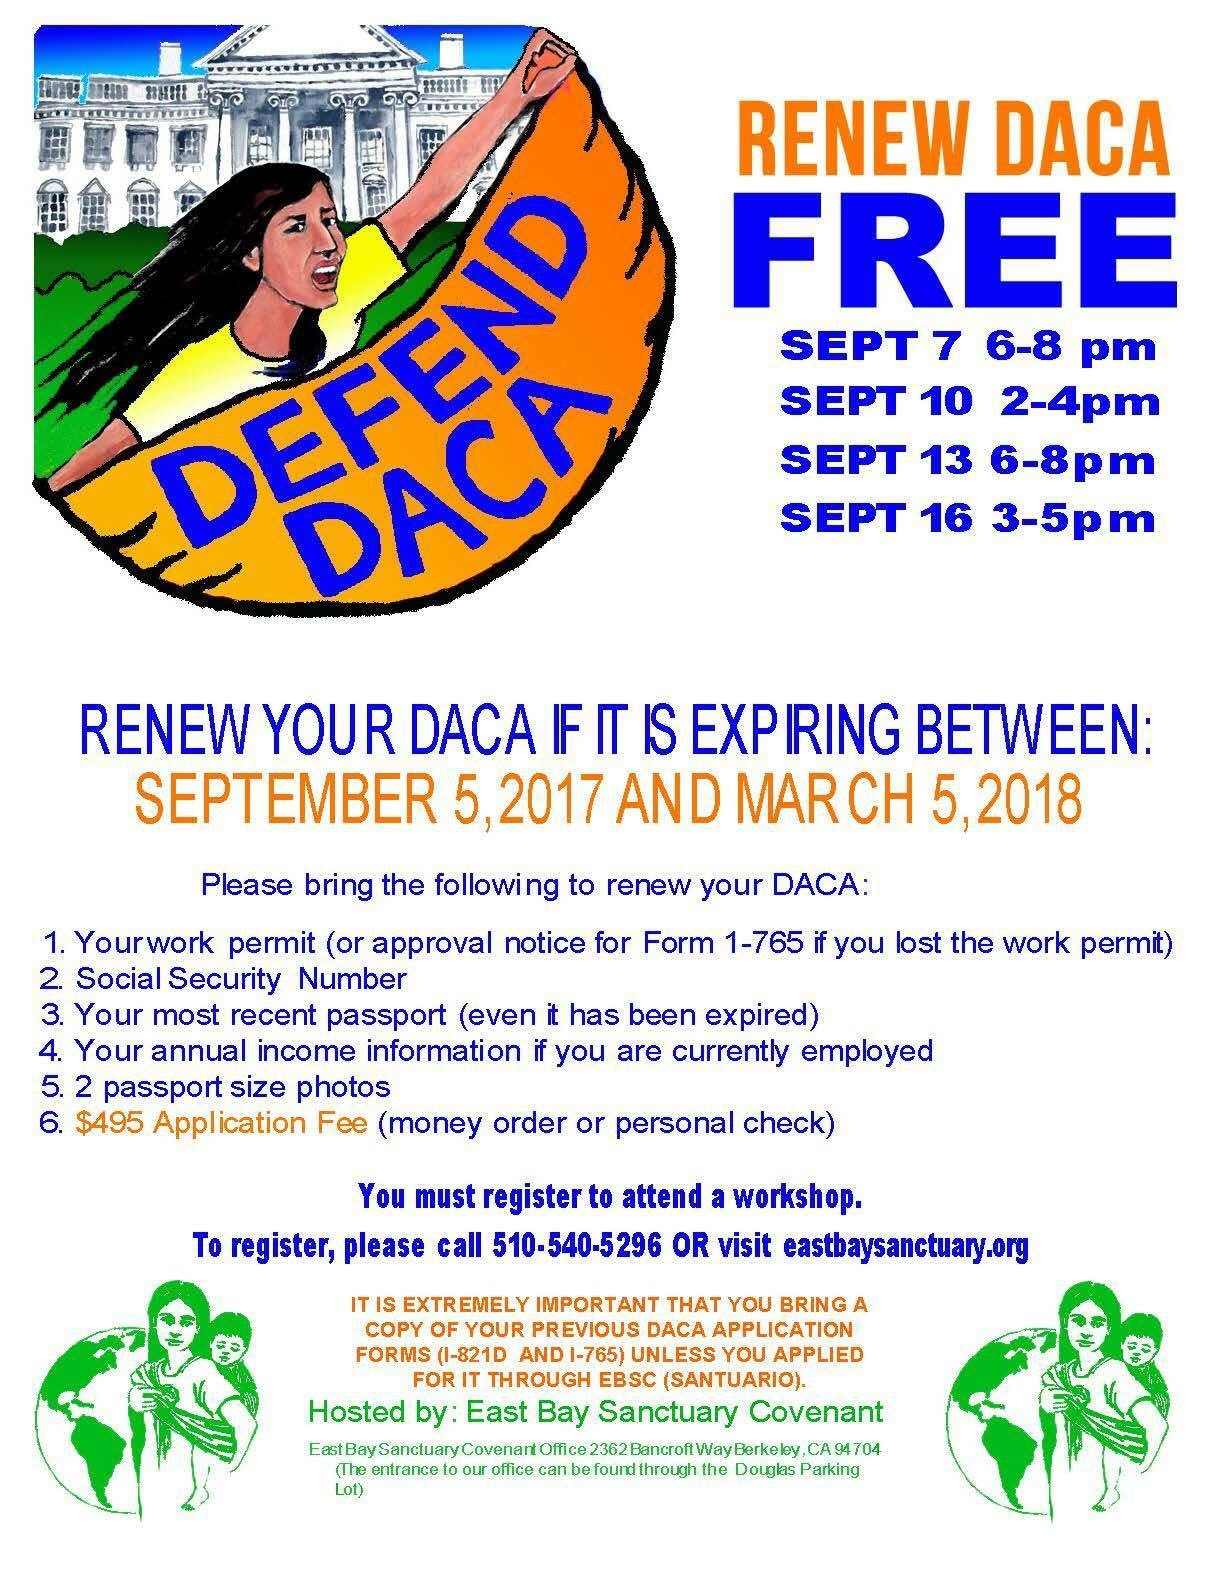 Renew DACA Free @ Register to get location.